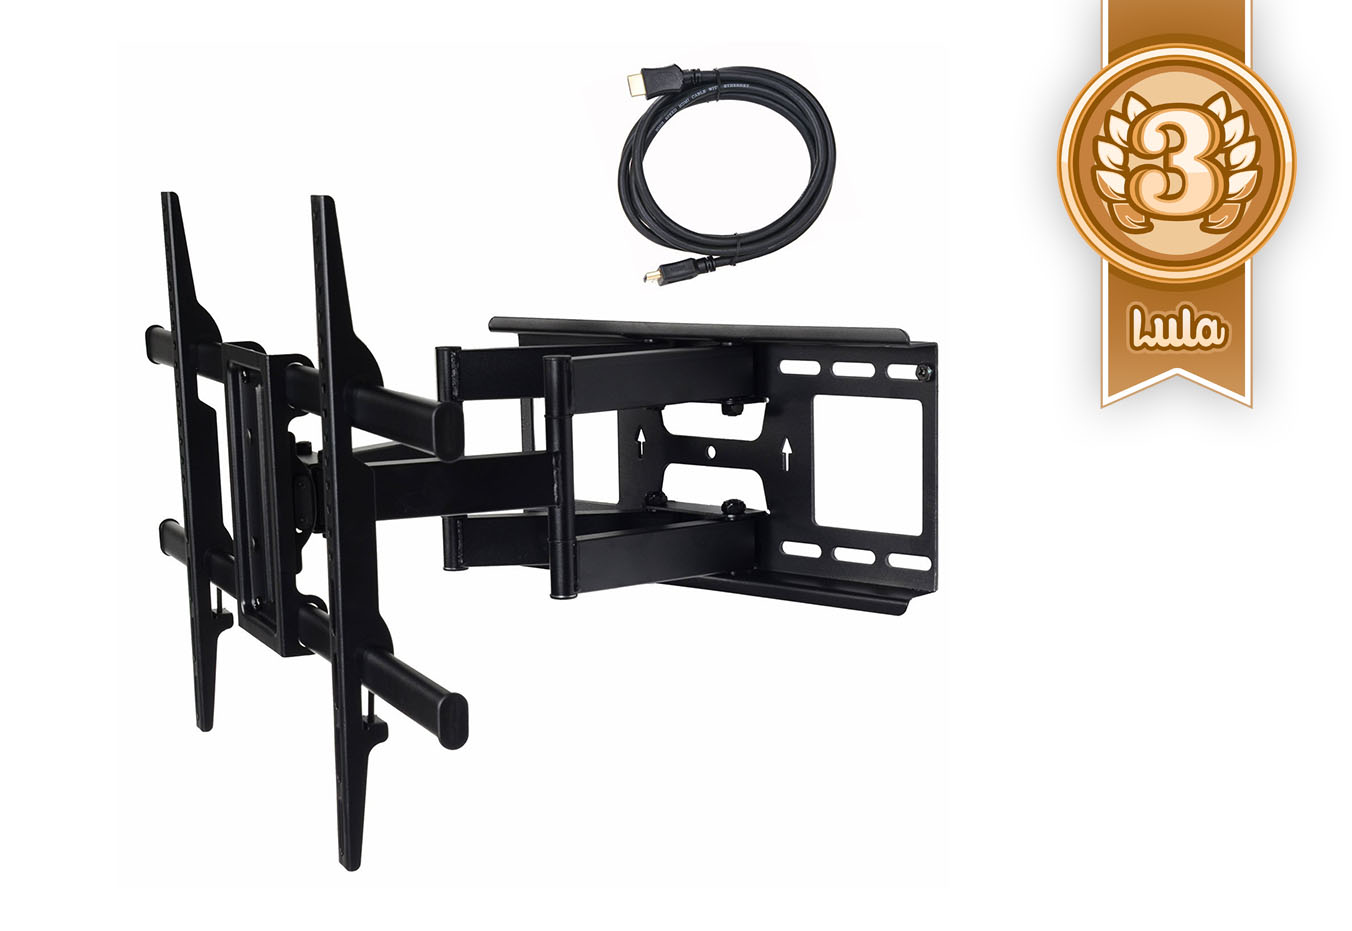 videosecu articulating tv mount